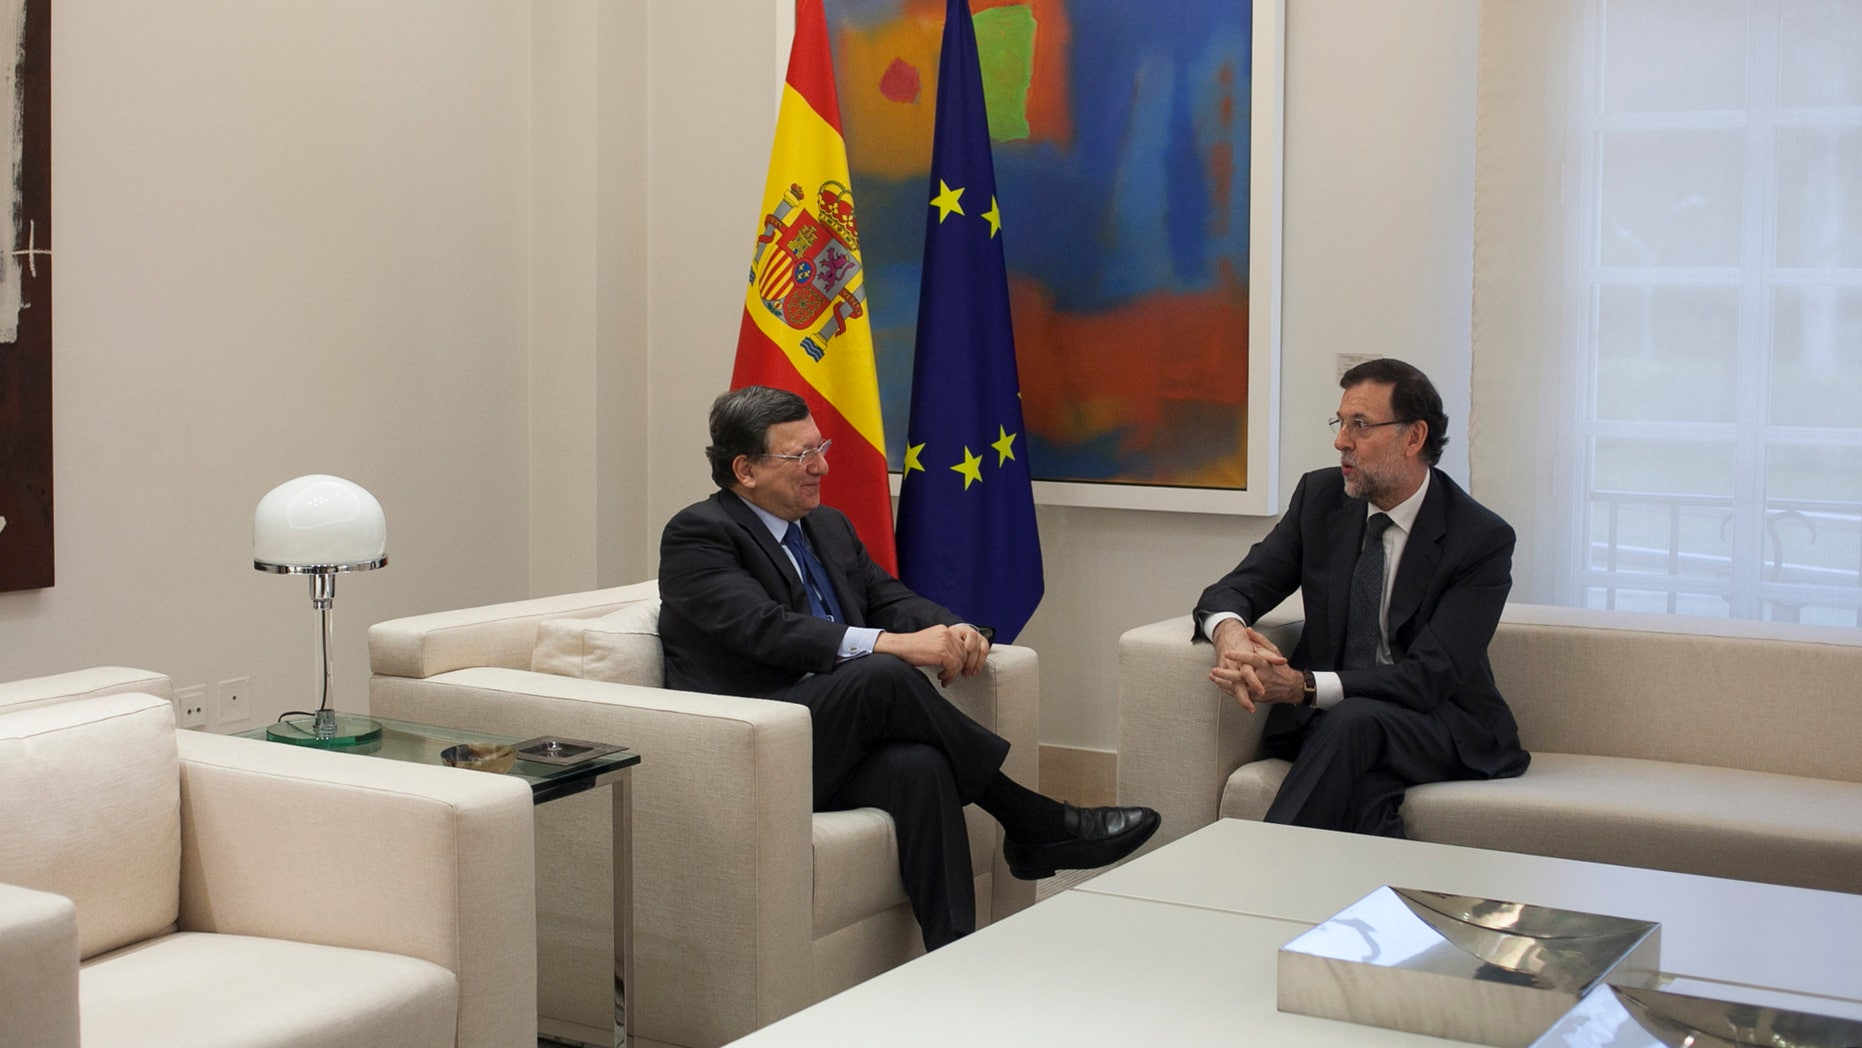 Spain's Prime Minister Mariano Rajoy and EU Commission President Jose Manuel Durao Barroso, in Madrid, Spain, Jan. 17, 2014.